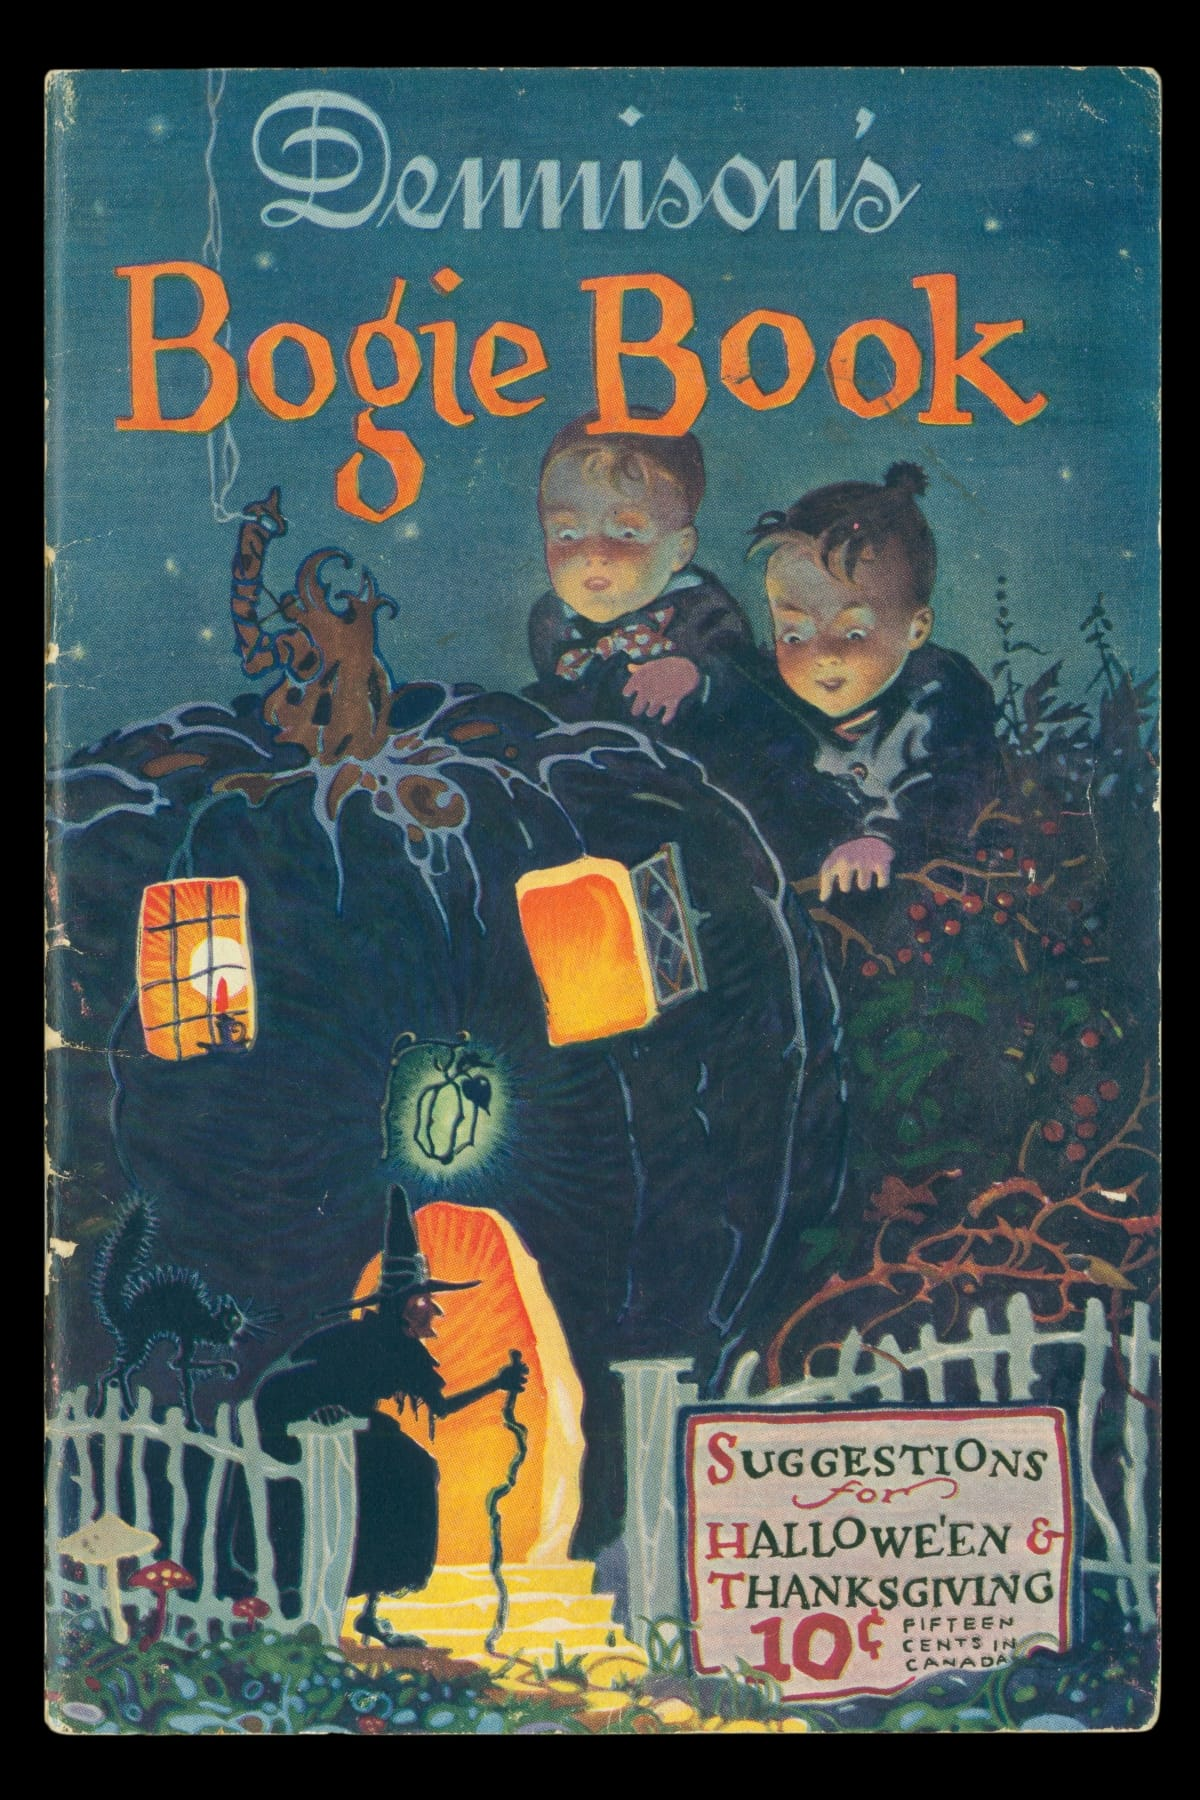 Two children look at a black pumpkin house with Halloween symbols nearby and text